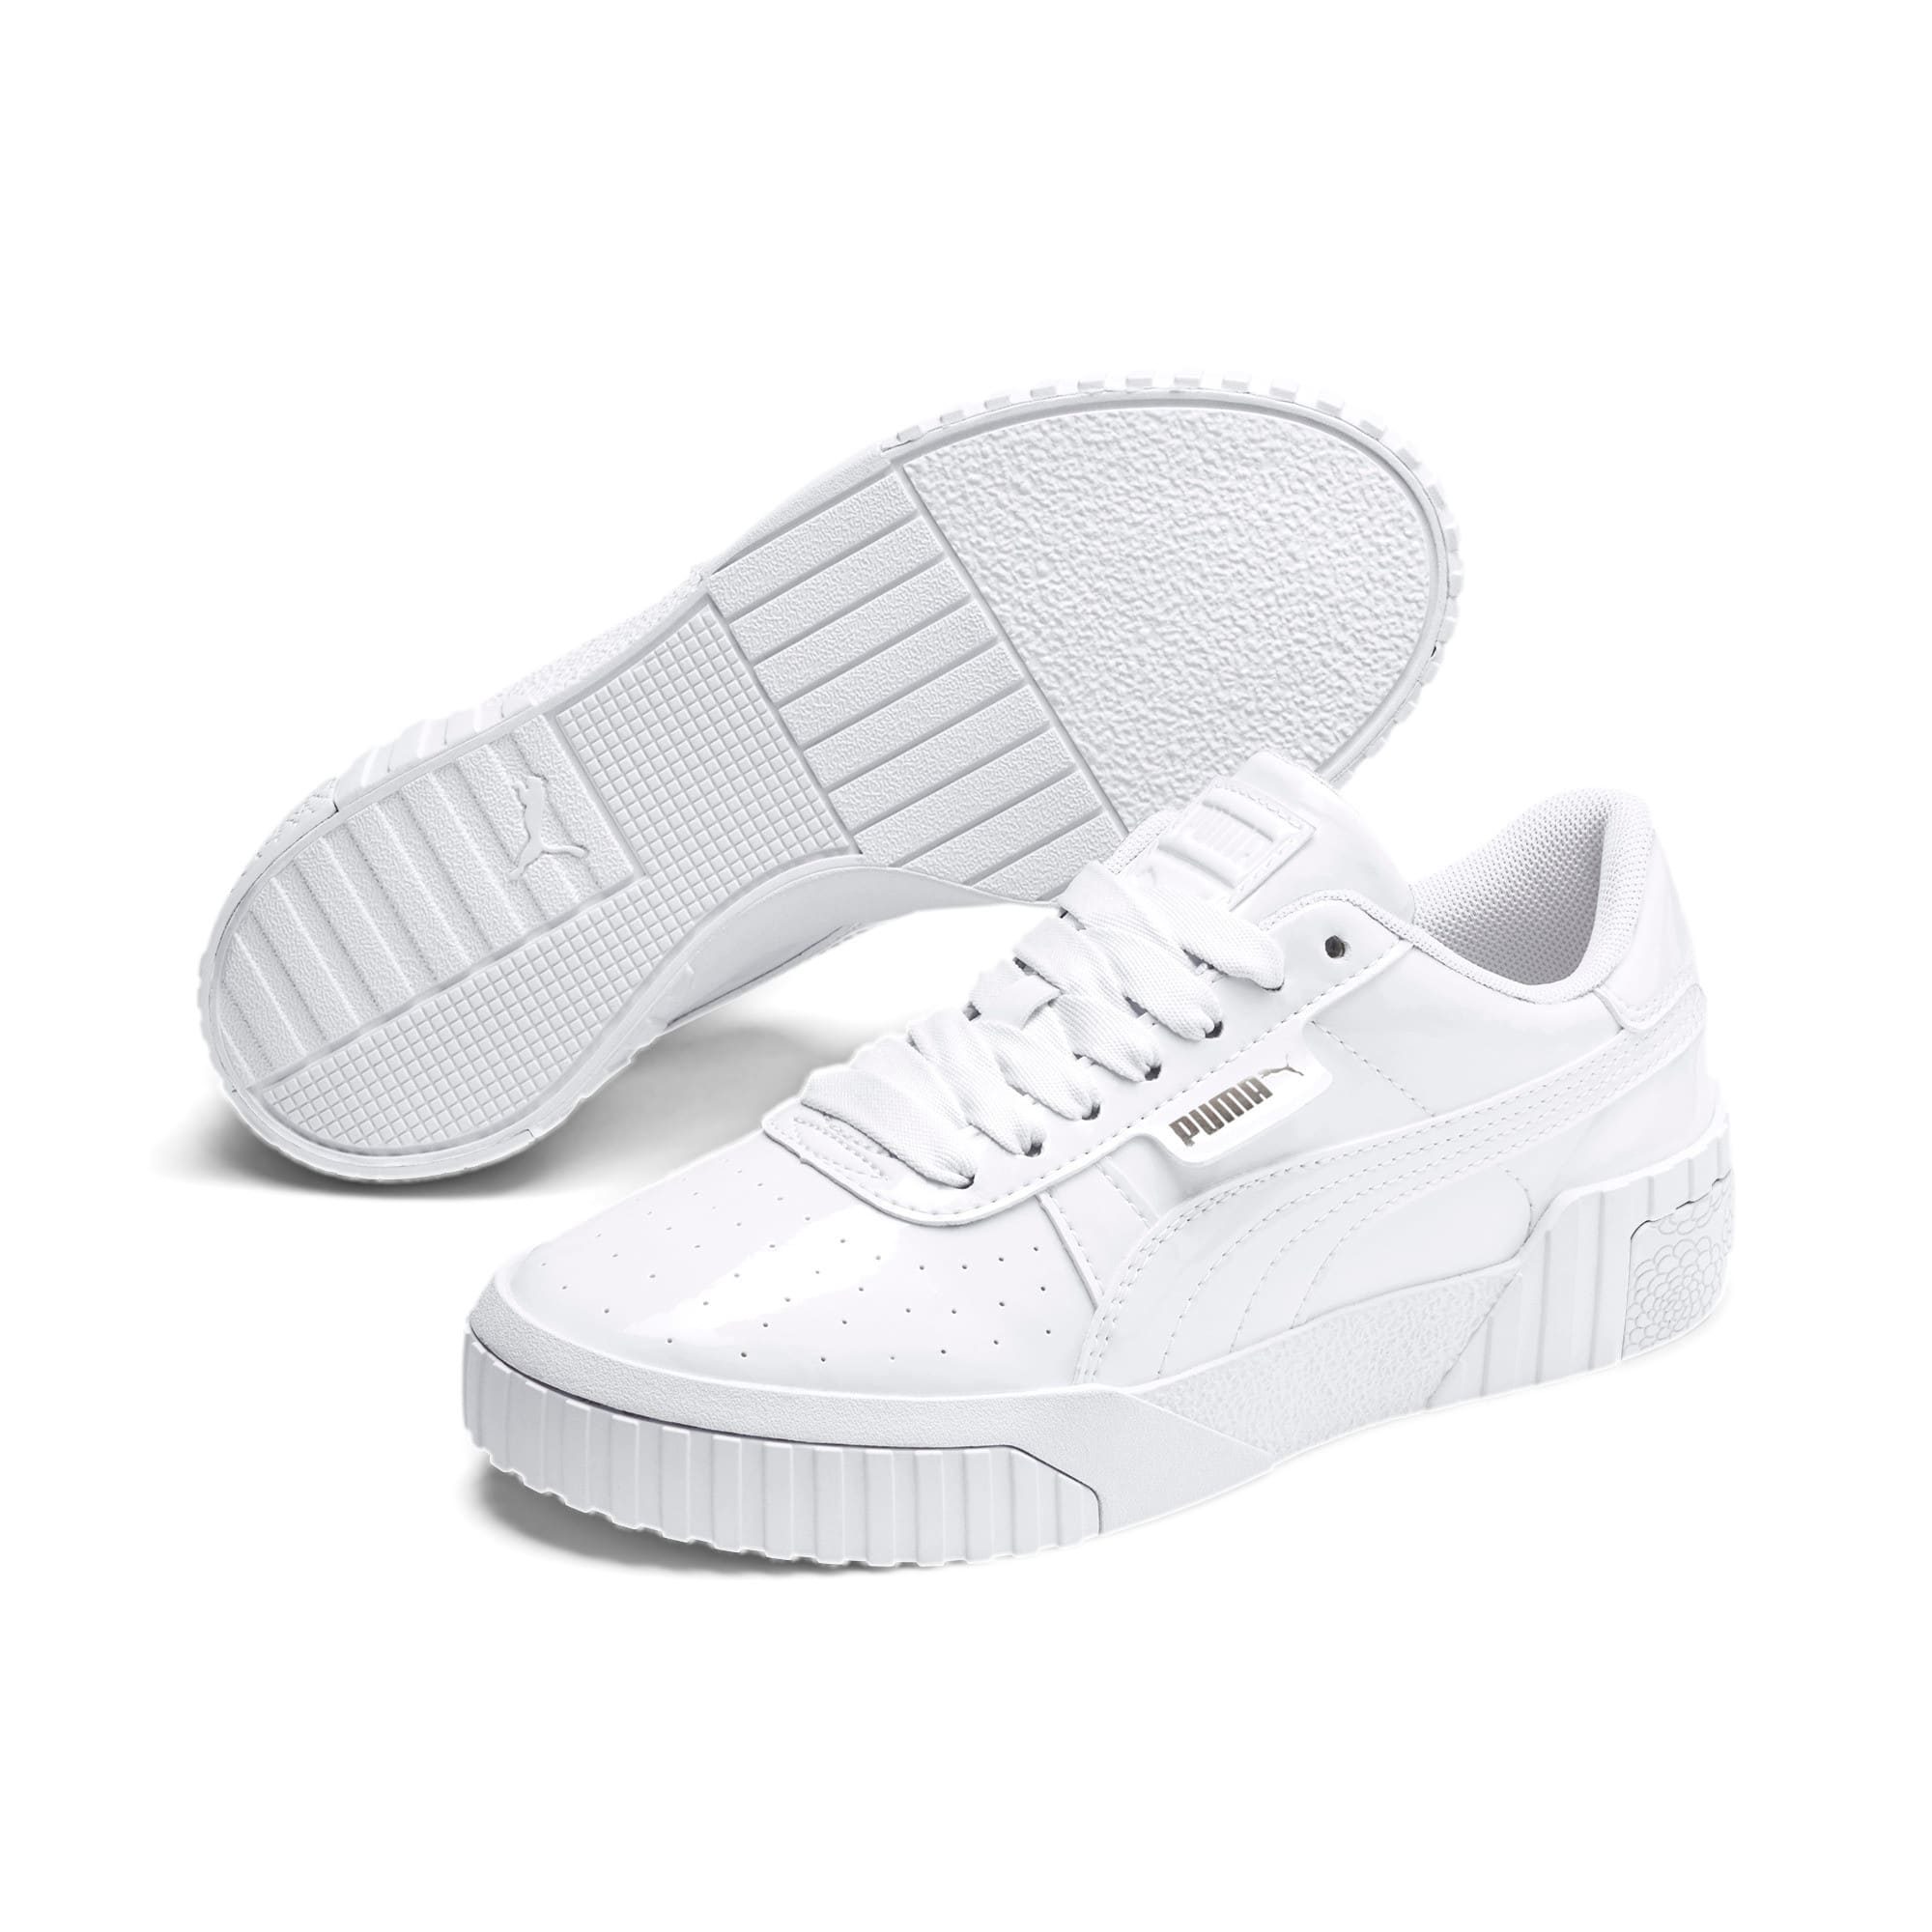 Thumbnail 2 of Cali Patent Youth Trainers, Puma White-Puma White, medium